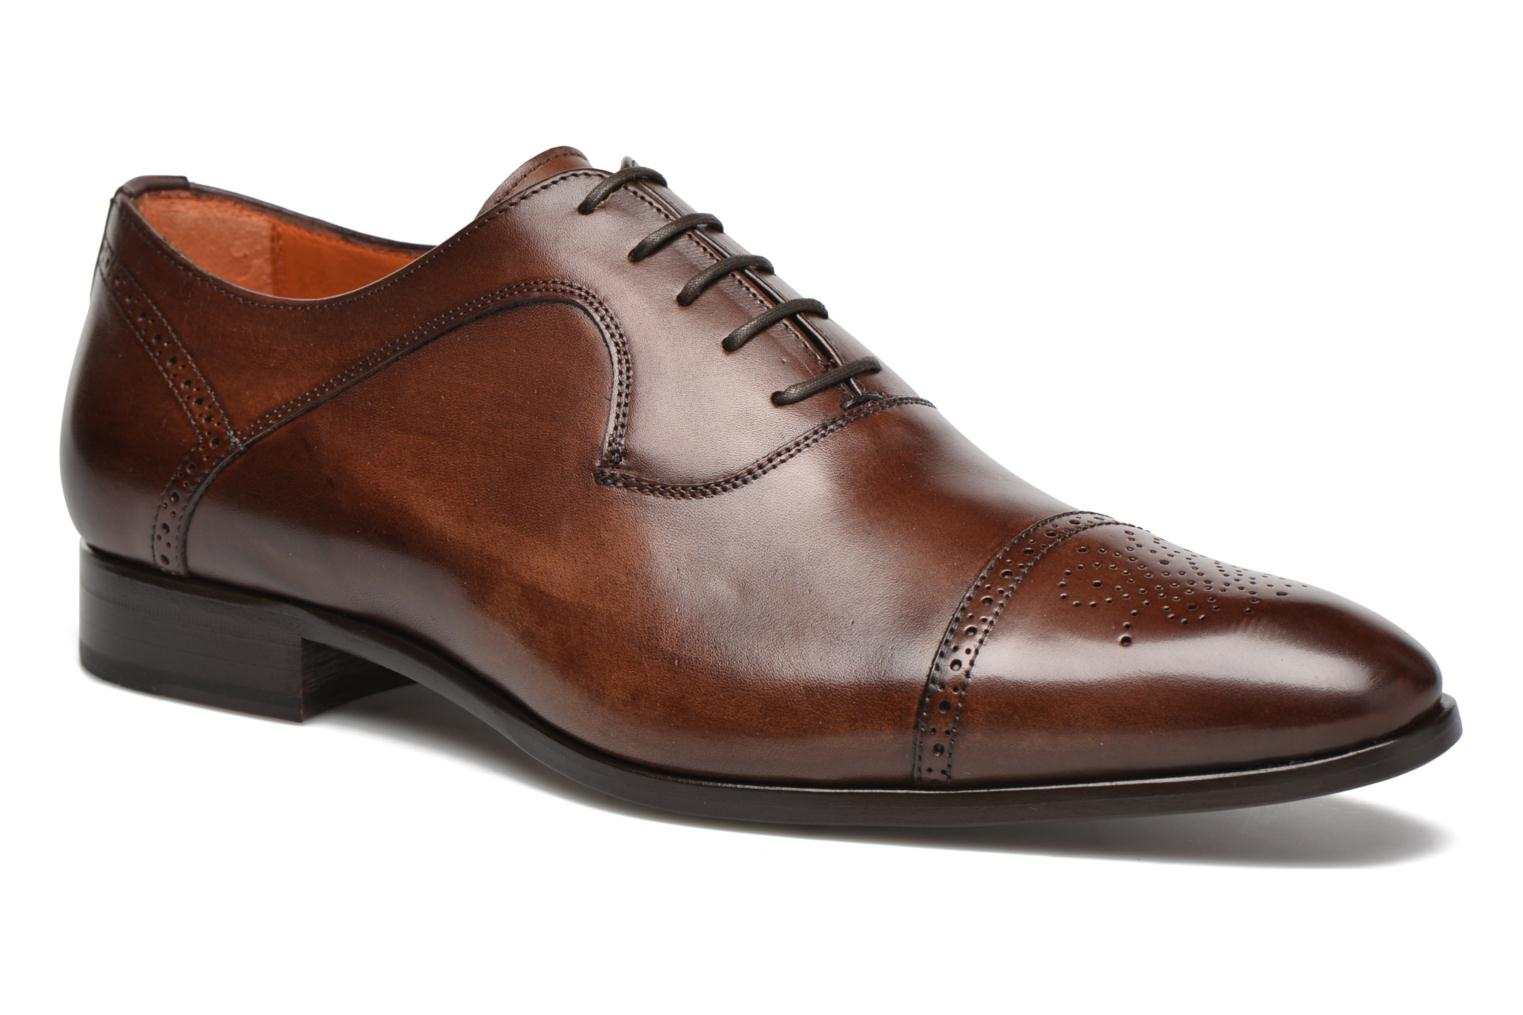 Marques Chaussure luxe homme Marvin&Co Luxe homme Pemou - Cousu Blake Positano castagna